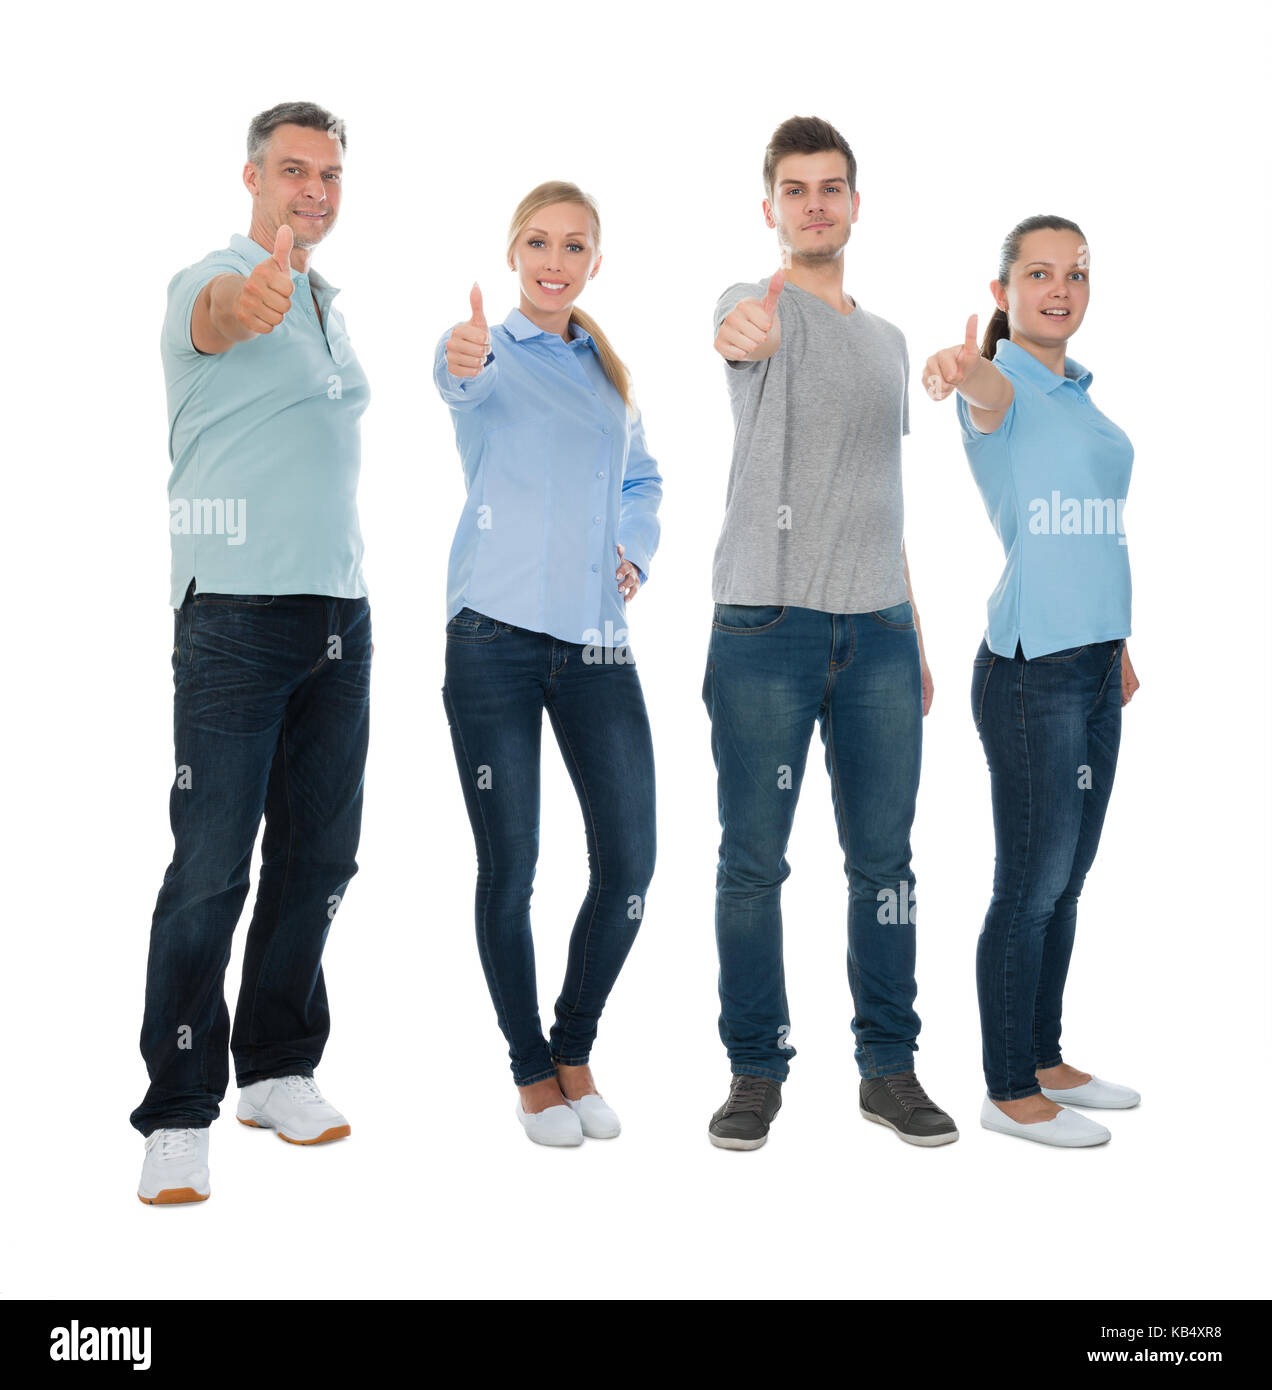 Group Of Happy People Showing Thumb Up Sign Over White Background - Stock Image